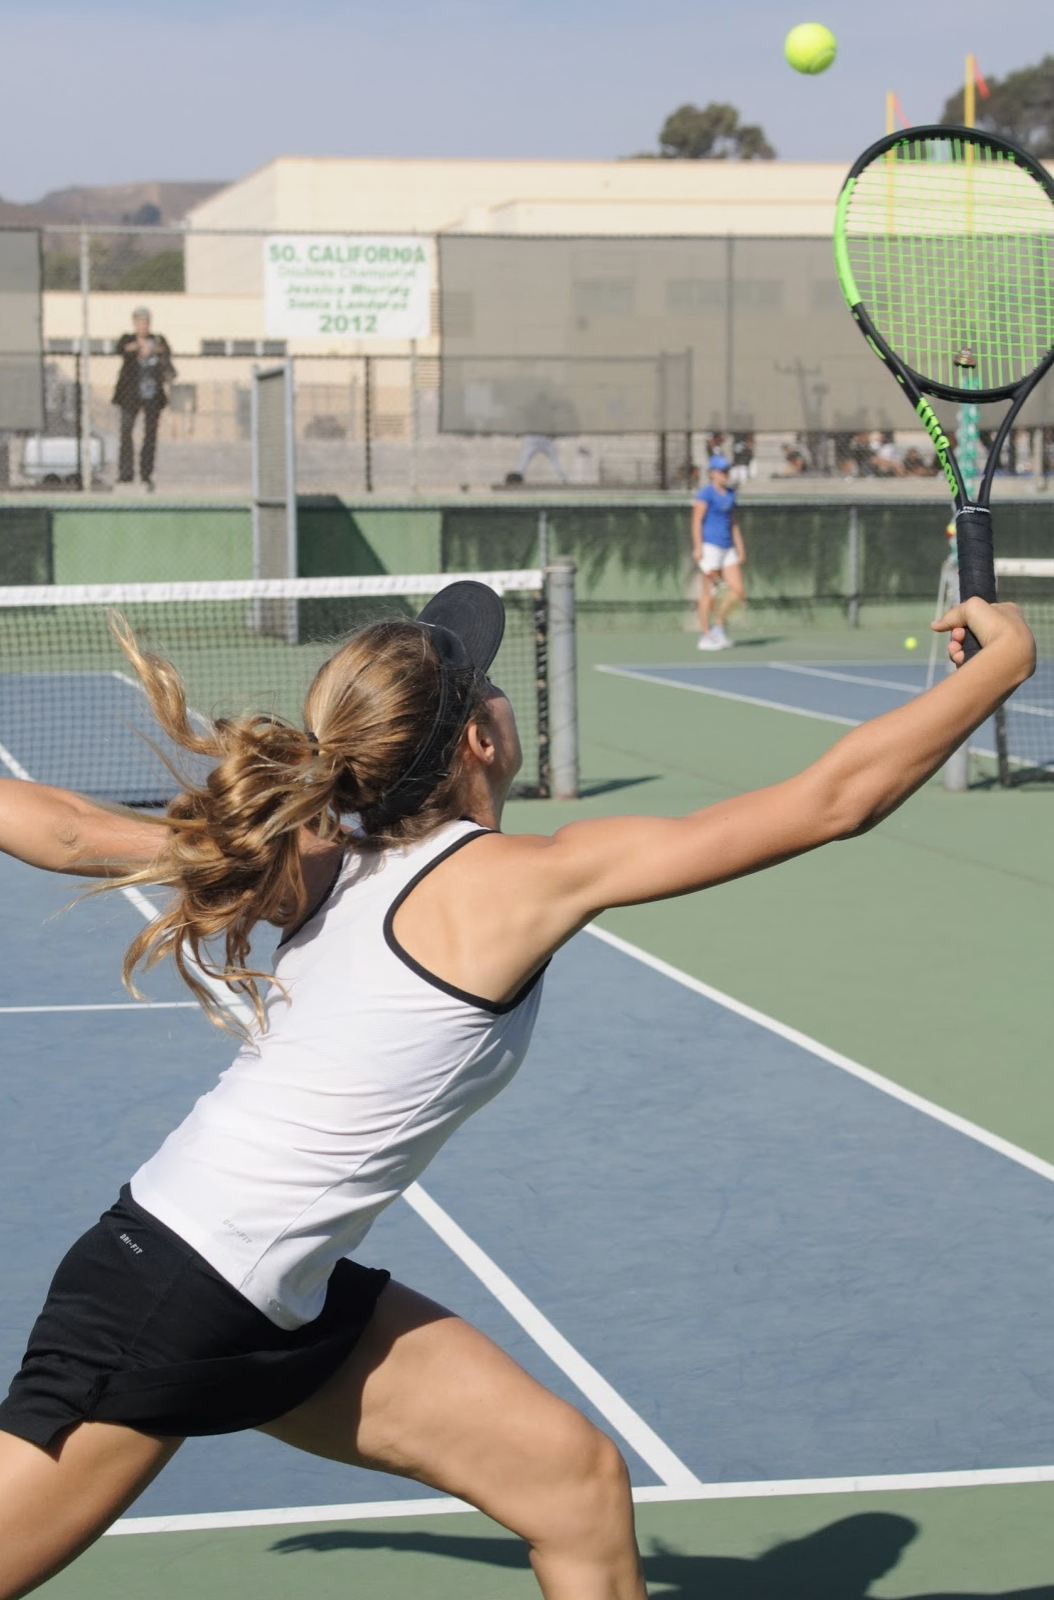 Noelle Hayward '21 reaches for the ball and manages to save it by hitting it over the net. Credit: Muriel Rowley / The Foothill Dragon Press